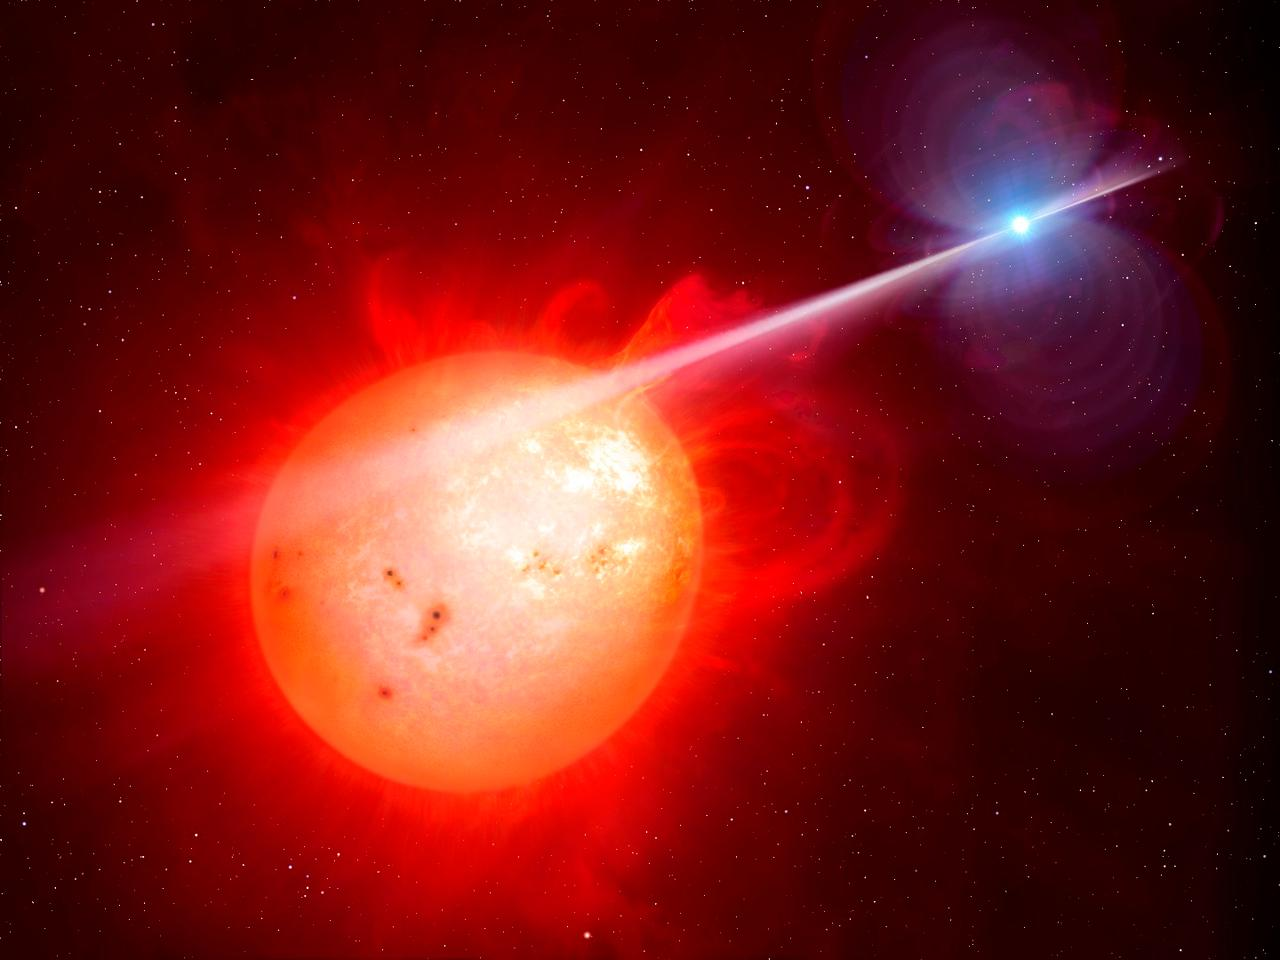 Astronomers have spotted a white dwarf pulsar for the first time